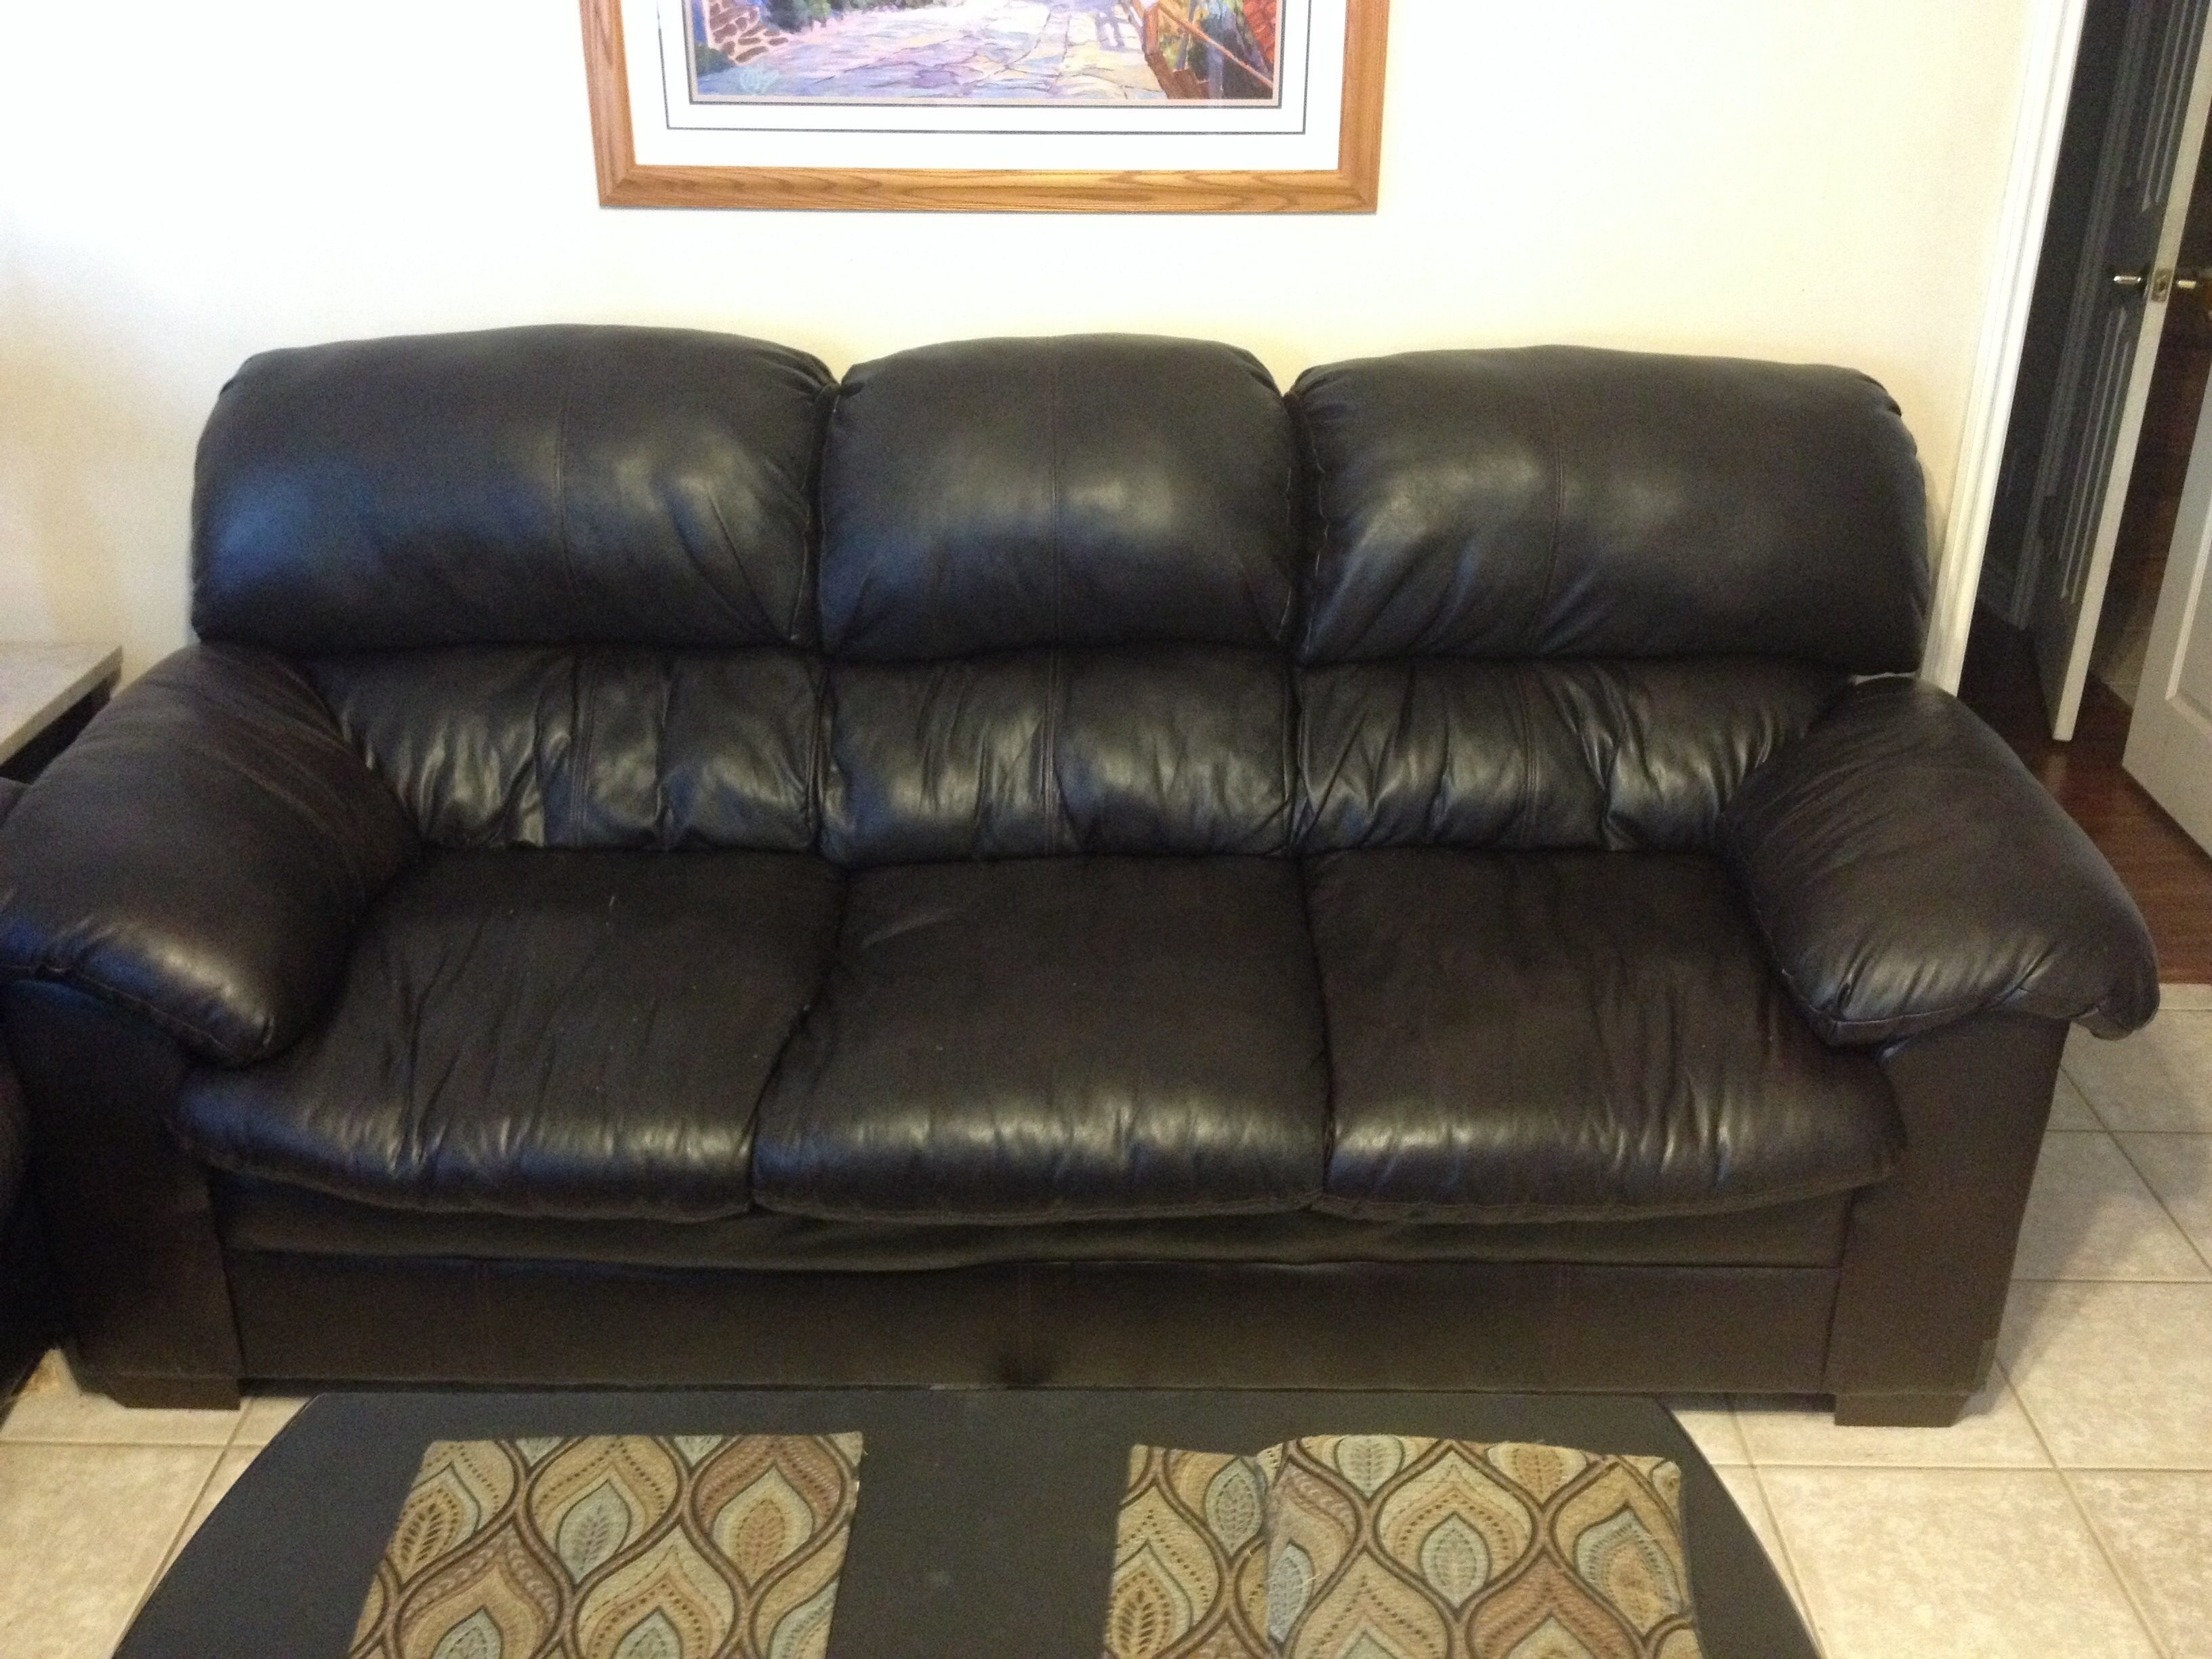 Top 202 Complaints And Reviews About Big Lots Page 3 For Big Lots Sofas (#12 of 12)